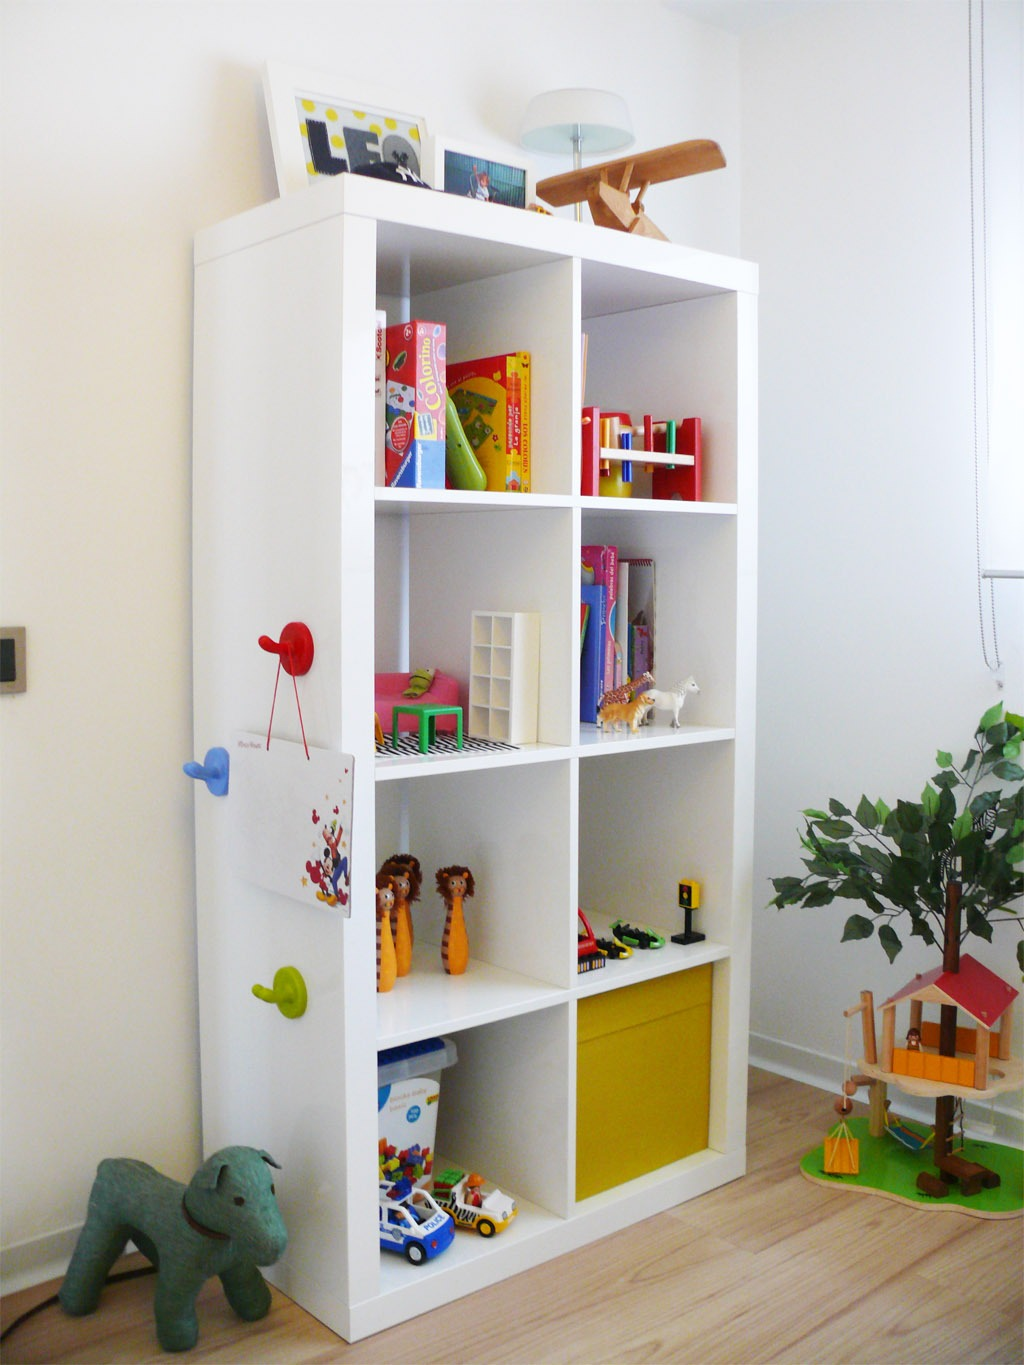 Dormitorios infantiles ideas para decorarlos rutchicote - Ideas decoracion habitacion infantil ...